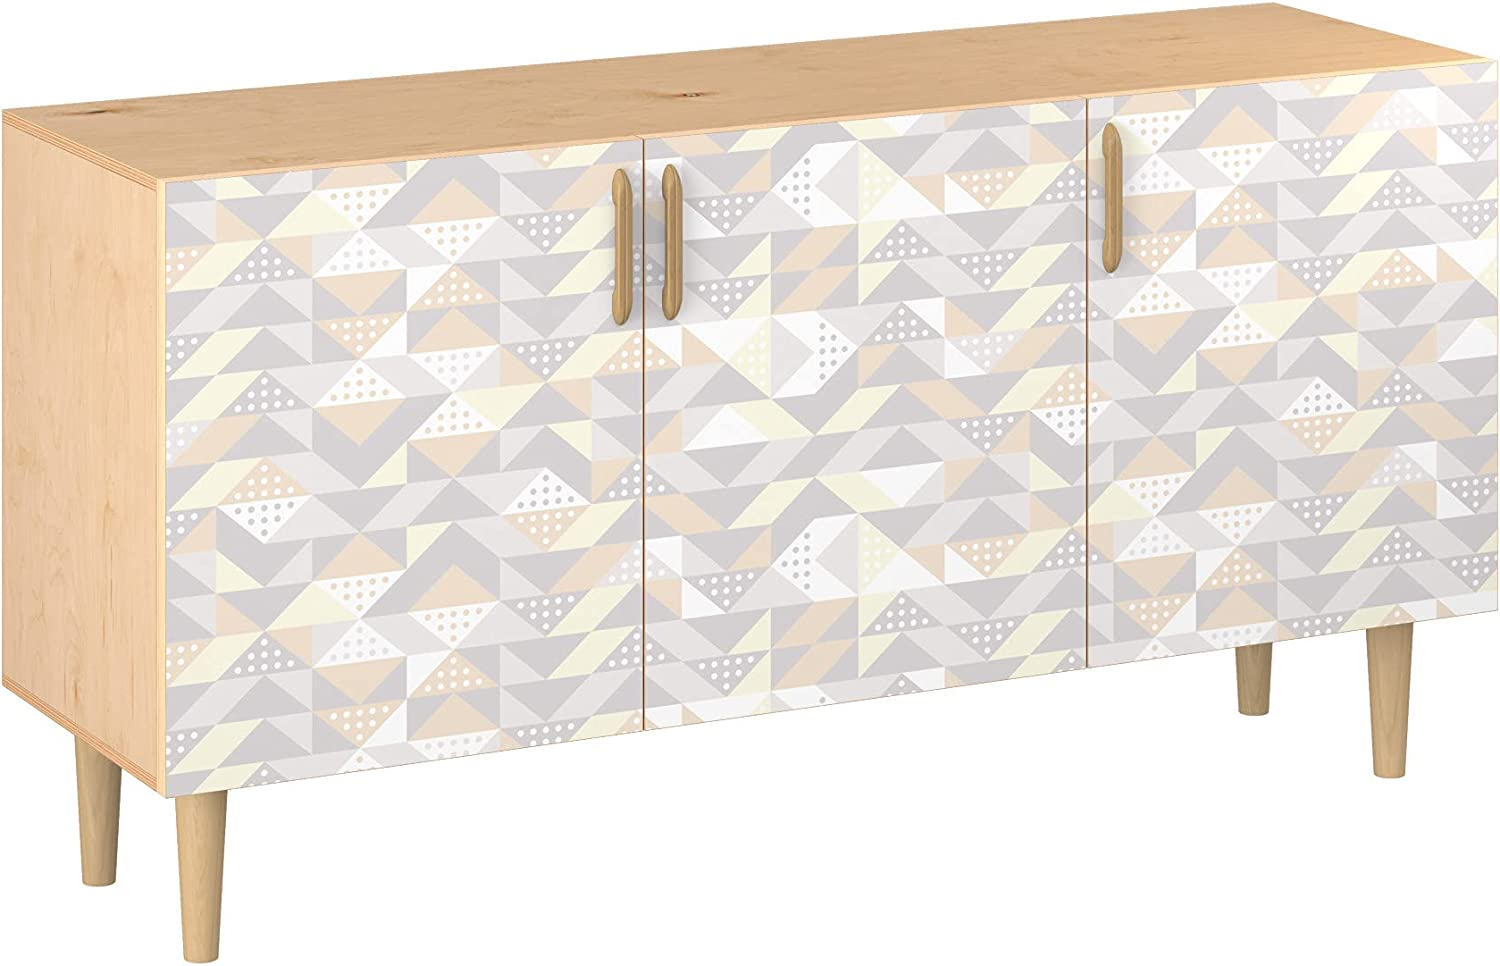 Poppy Los Angeles Mall Sideboard Philadelphia Mall - Natural Velma Design Sty 11 Colors Base 5 in